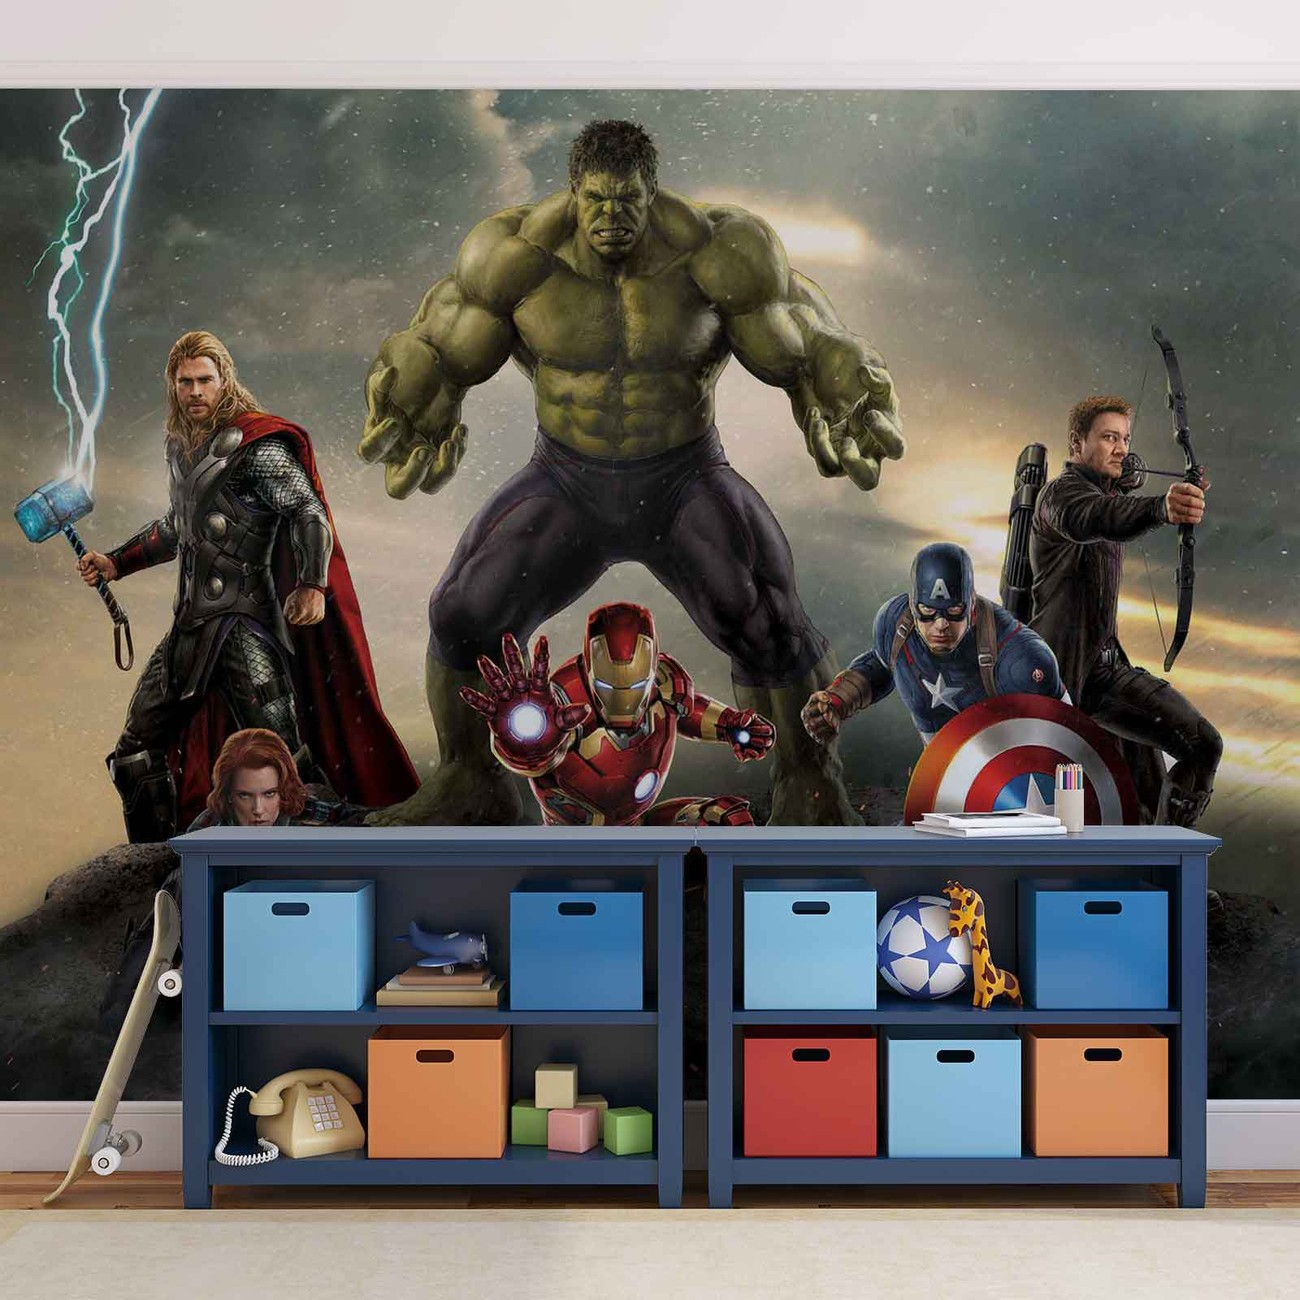 marvel battle wall paper mural buy at europosters